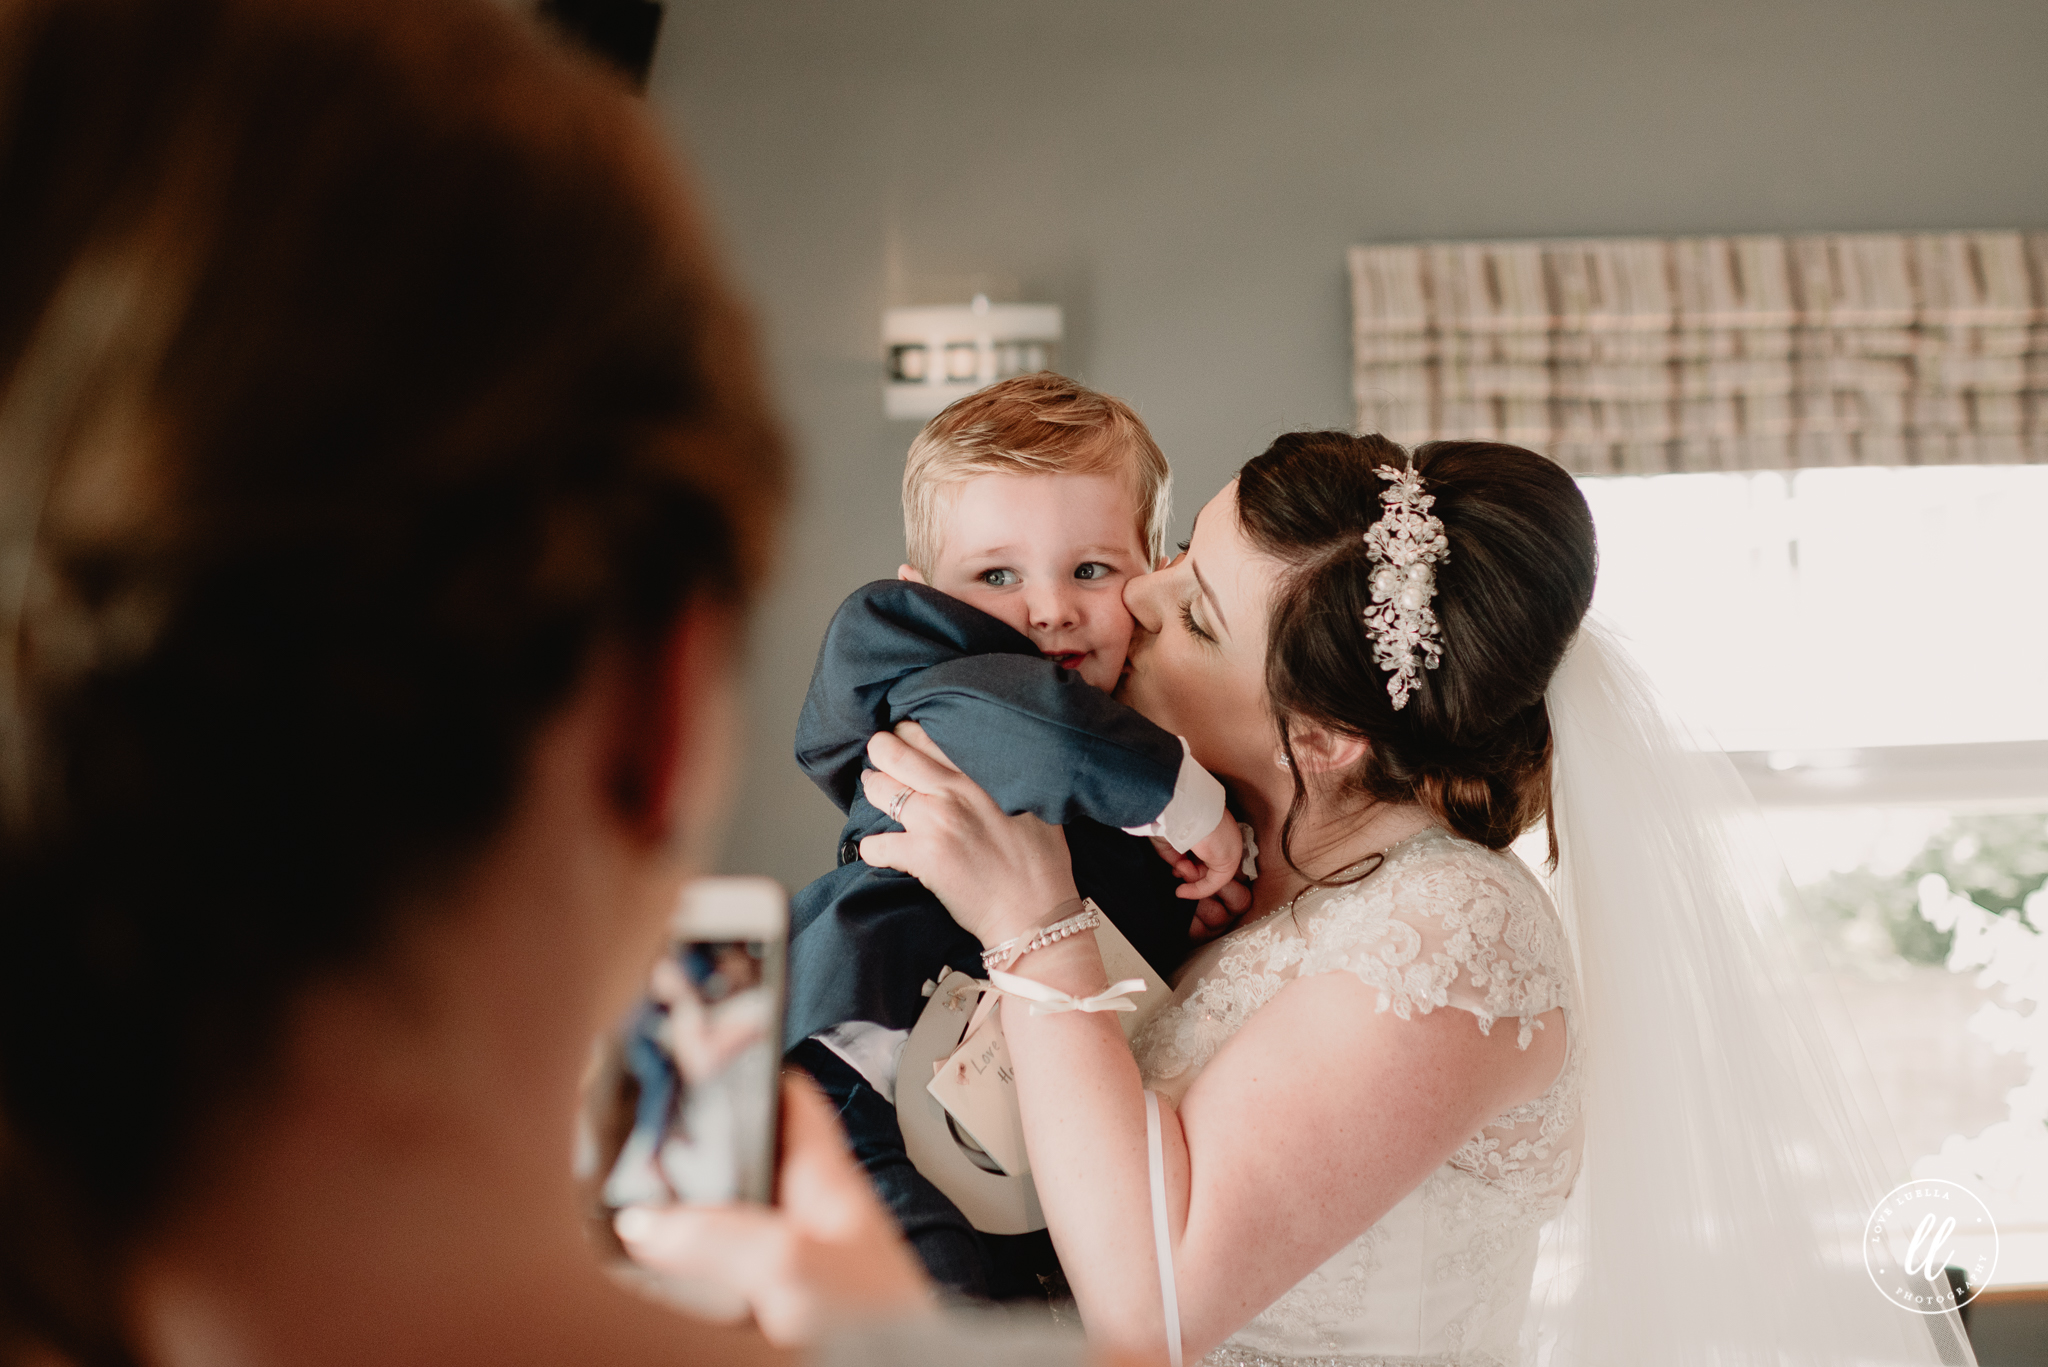 The bride holding her good friends baby and giving him a kiss